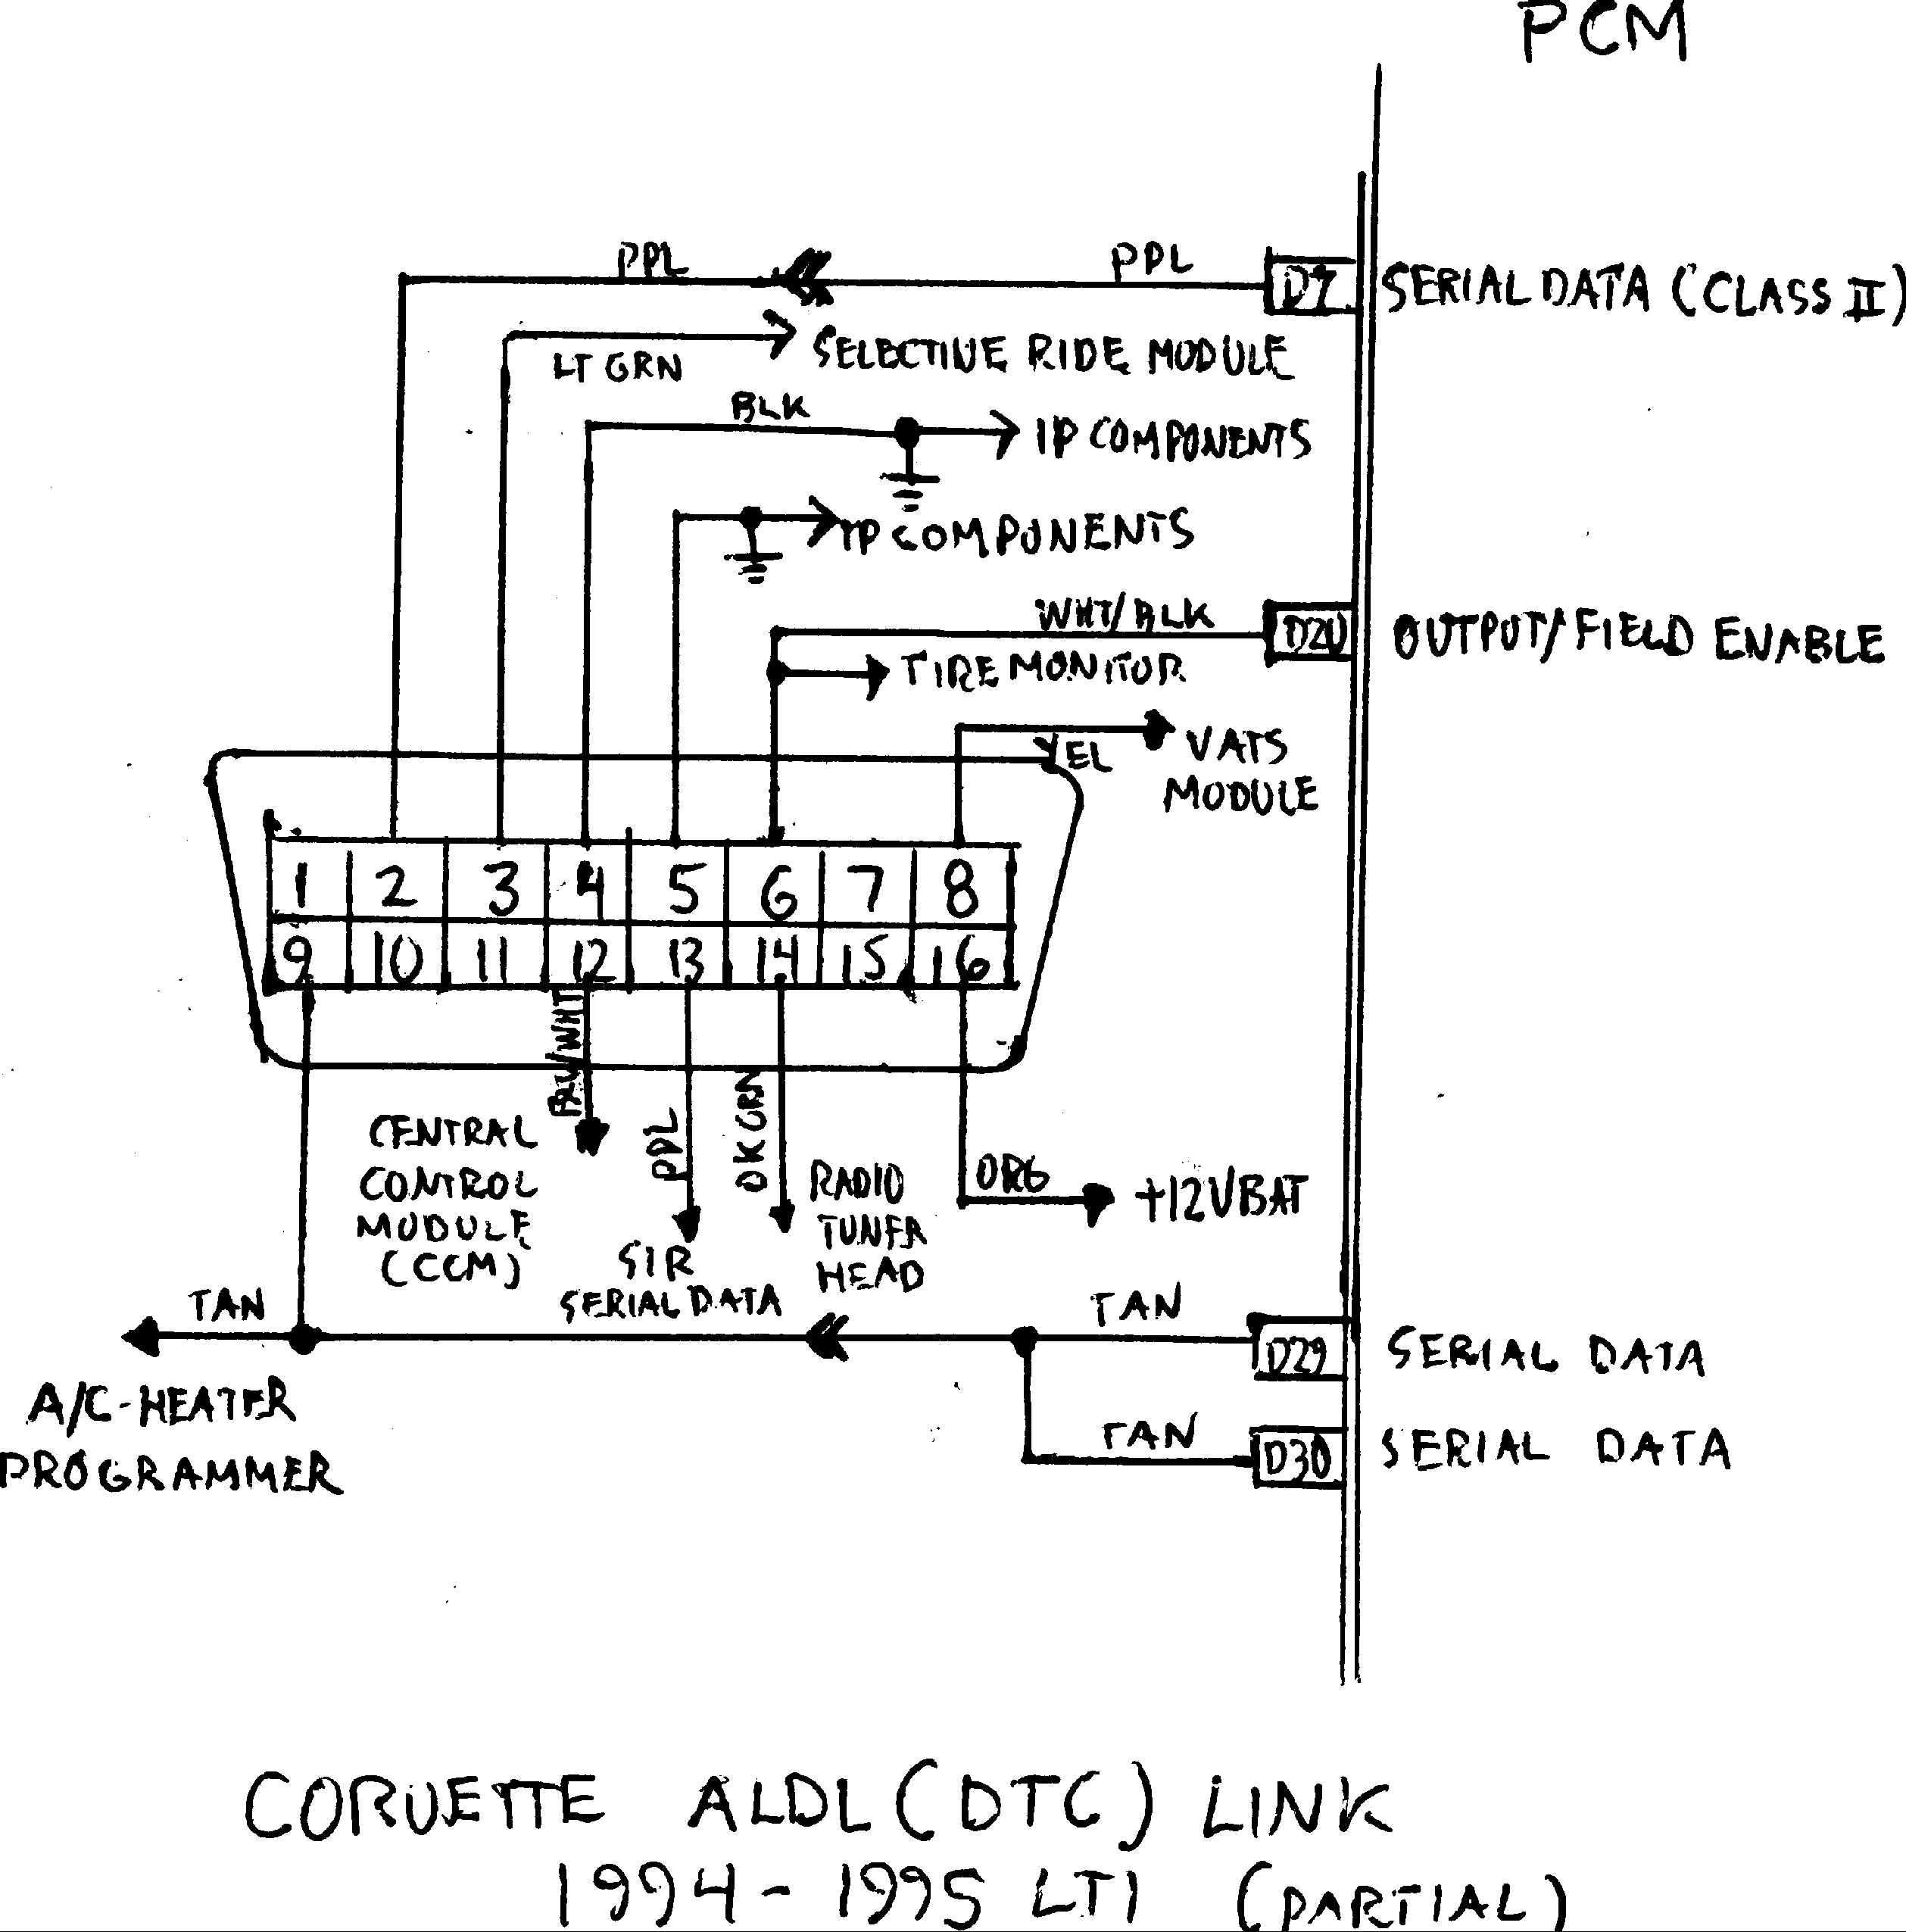 Odb2 Wiring Diagram Electrical Disconnect Fuse Panel Diagram Of Pole 3 For Wiring Diagram Schematics